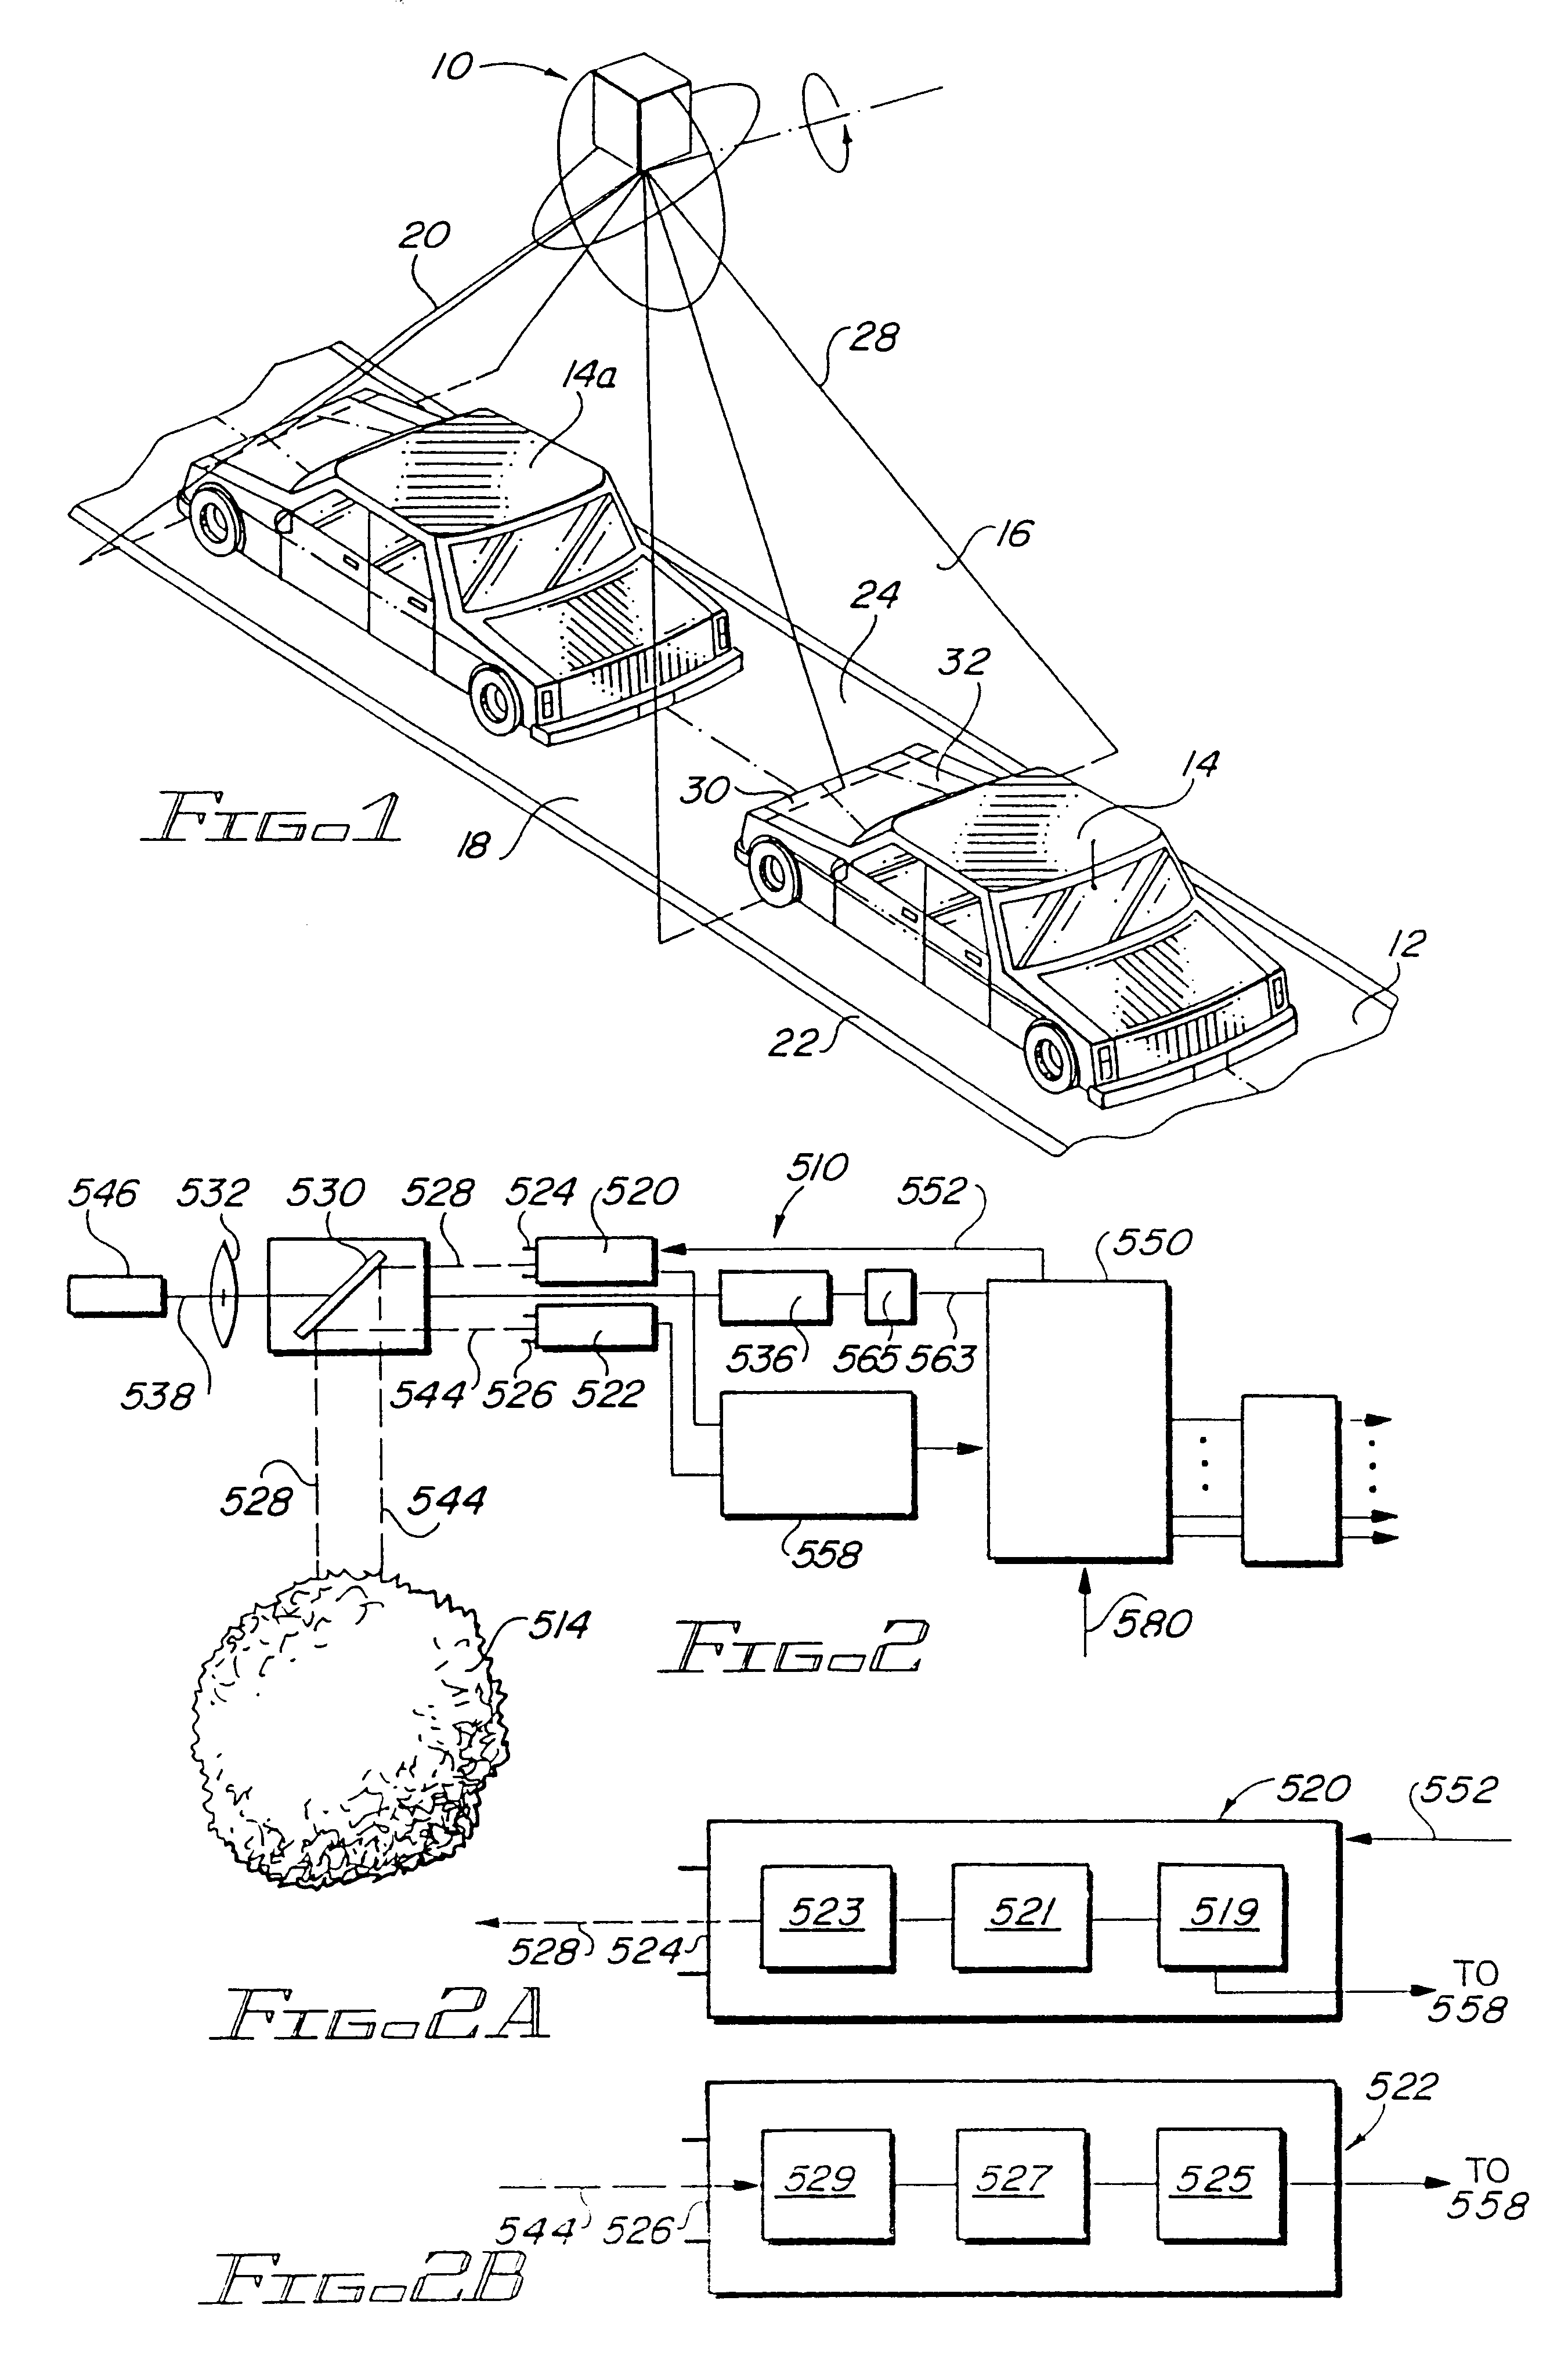 Freeware Wiring Diagrams Cars likewise Create Er Diagram From Schema in addition Wiring Inside Home Ac Thermostat Wiring Diagram additionally Major Nerves Arteries Upper Arm as well  on home wiring diagram freeware